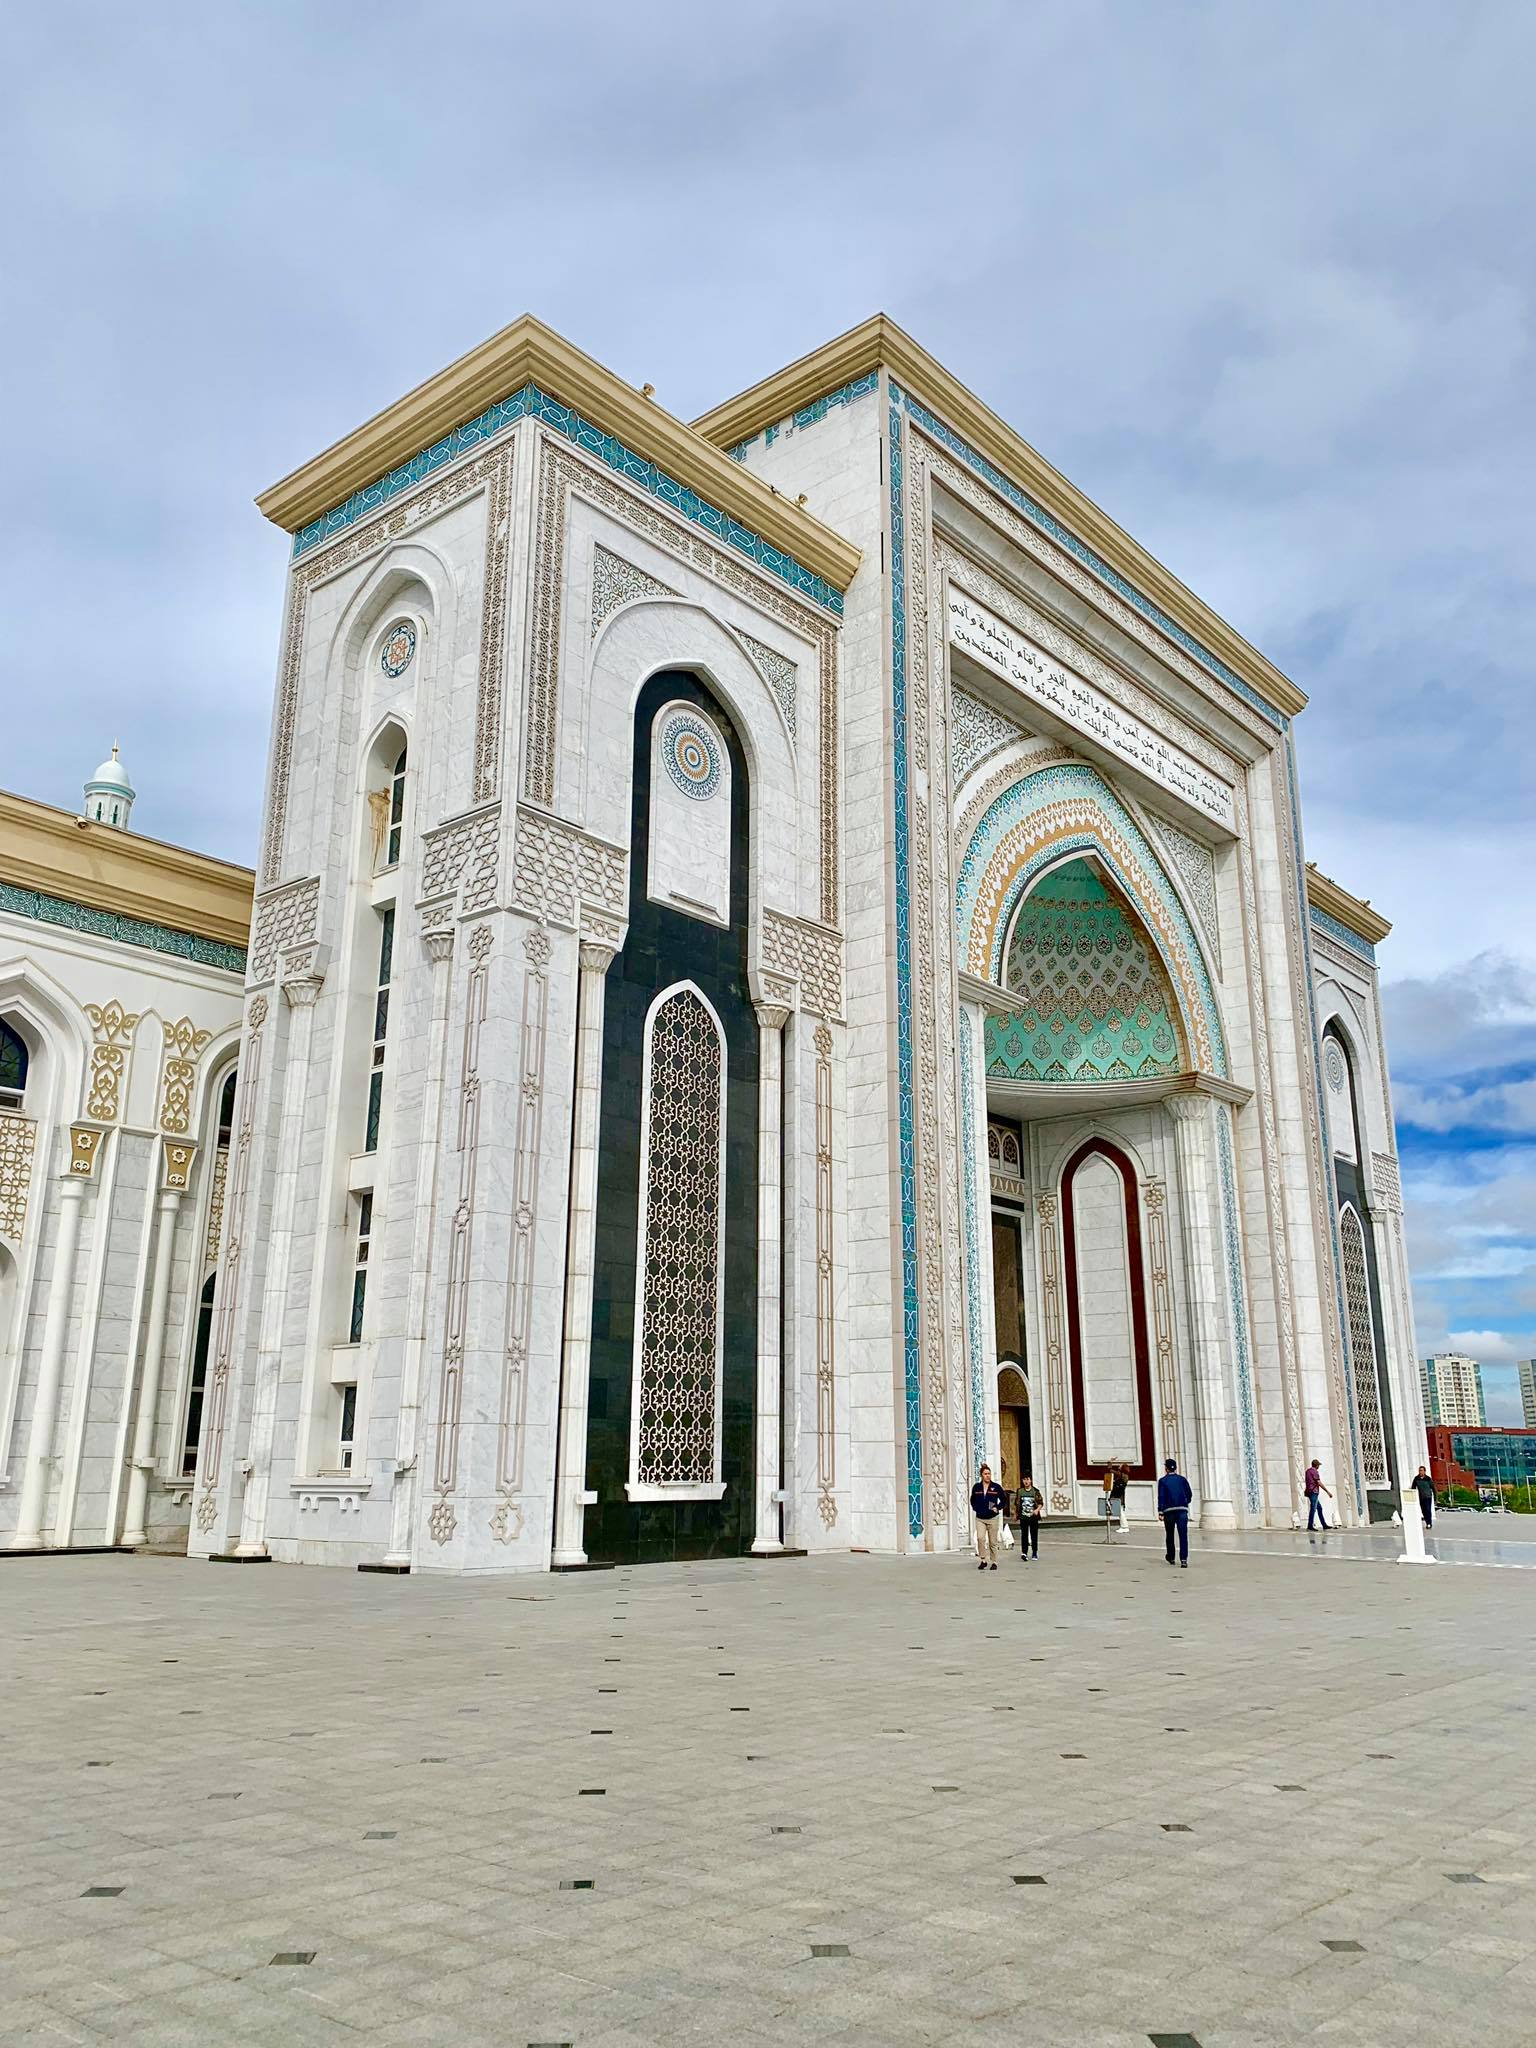 Kach Solo Travels in 2019 City tour in Astana1.jpg